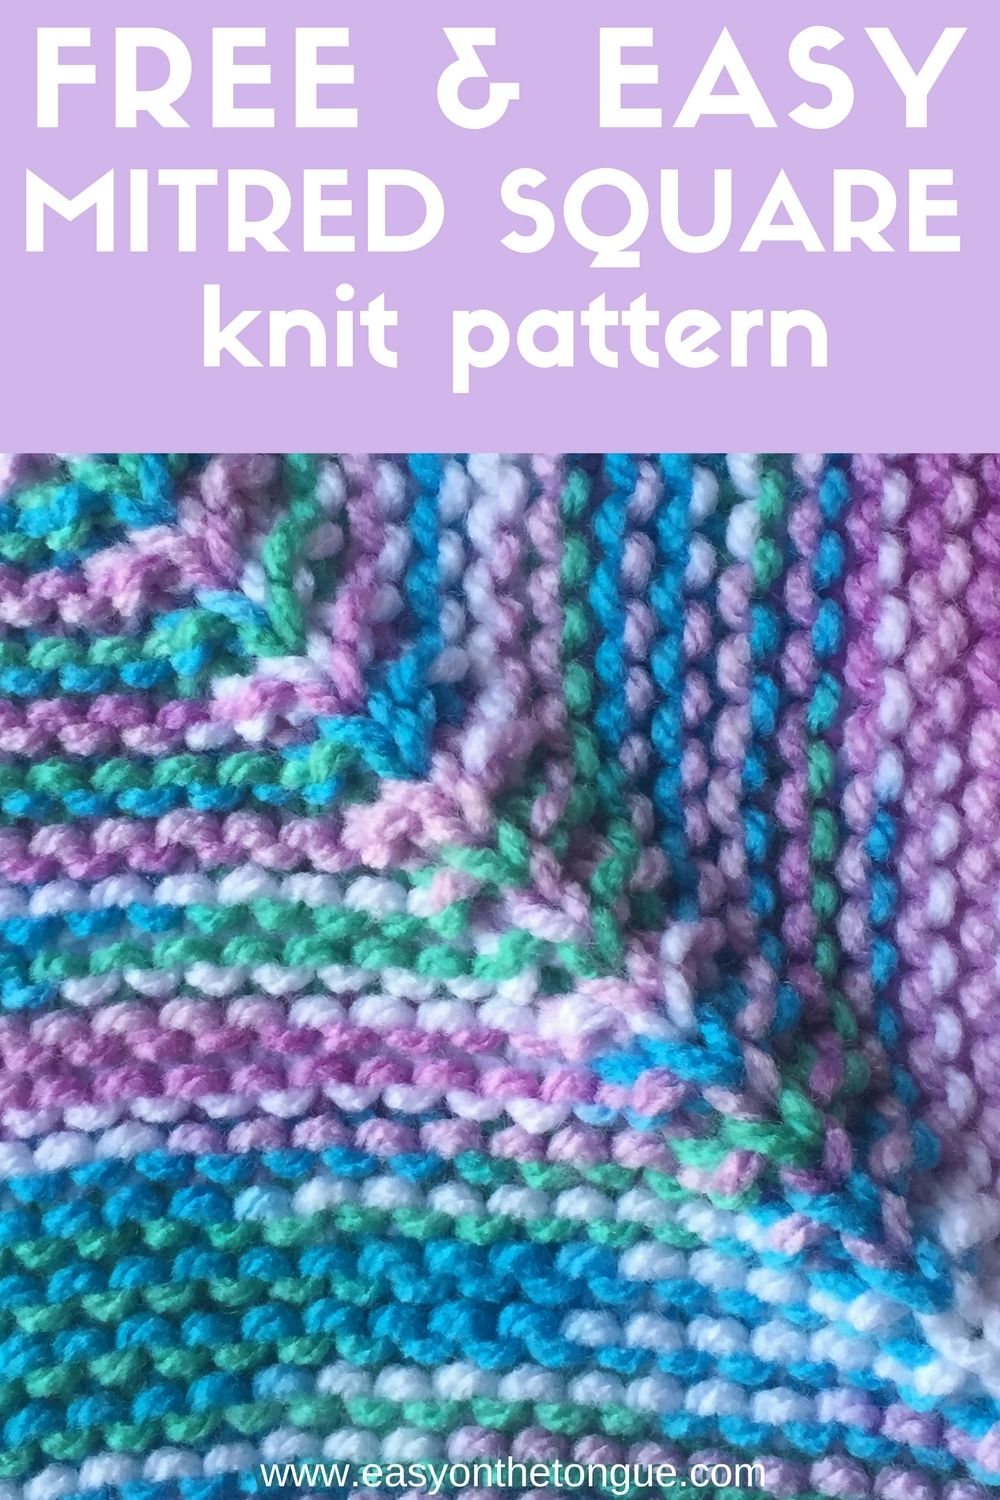 Free Easy Knit Square Pattern to Make a Quick Throw | Knit patterns ...